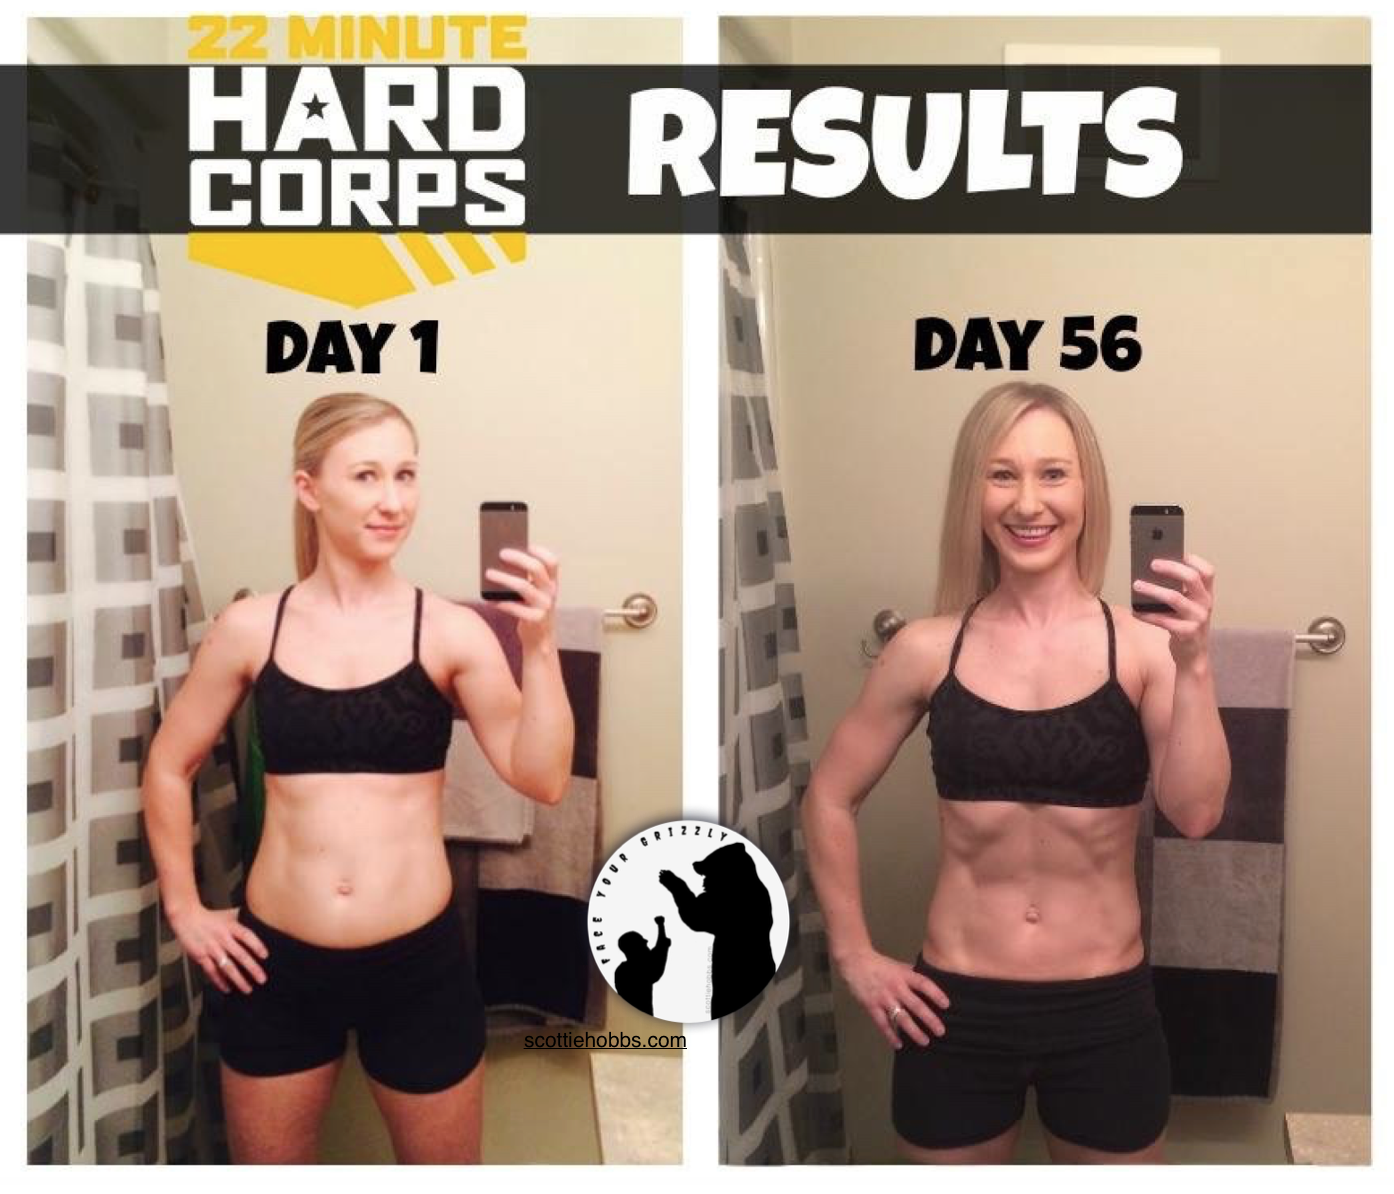 22 Minute Hard Corps Workout Program